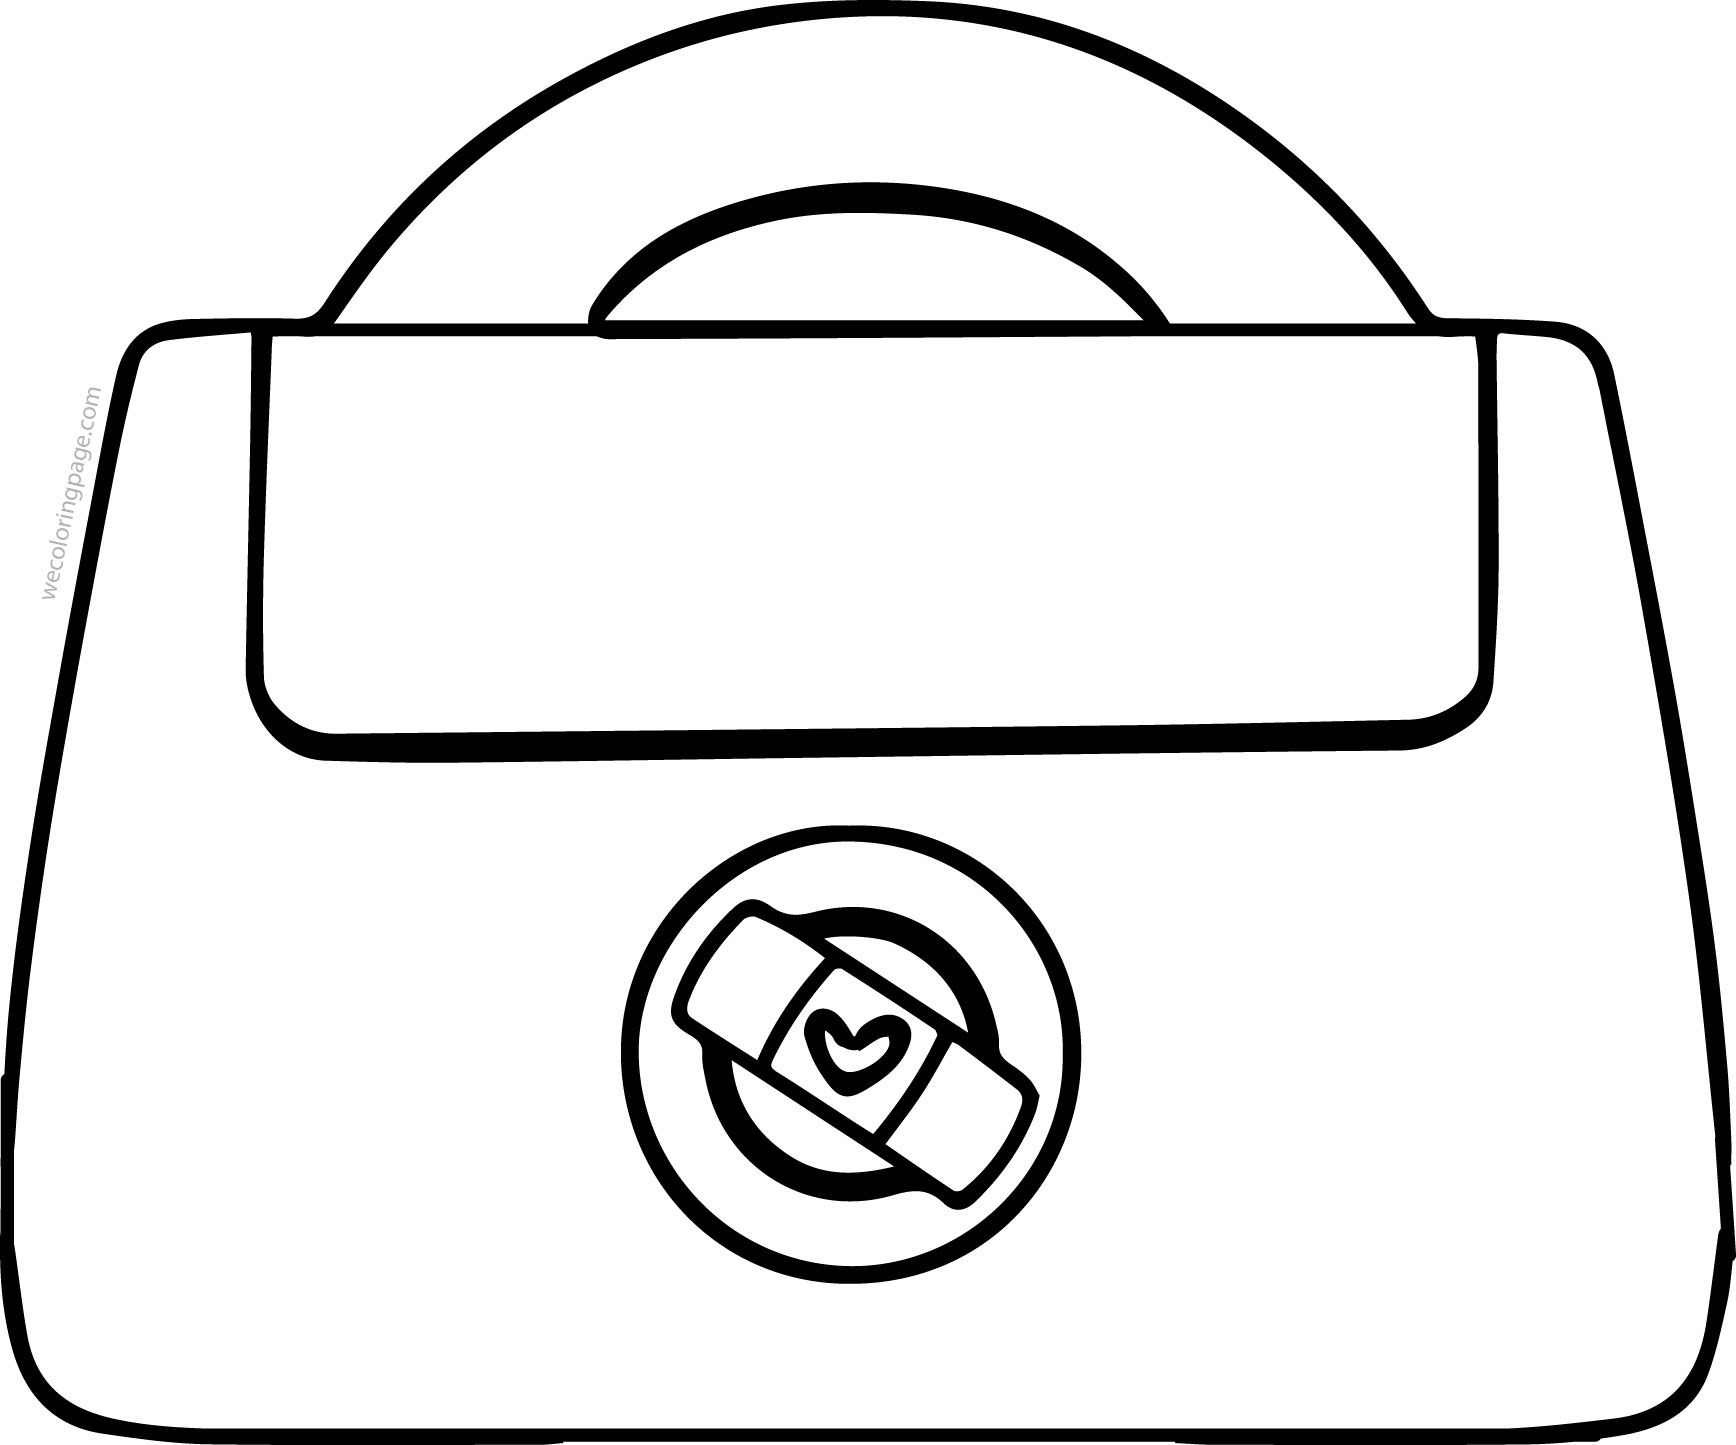 Coloring book bag - Doc Mcstuffins Medical Bag Coloring Page Jpg 1736